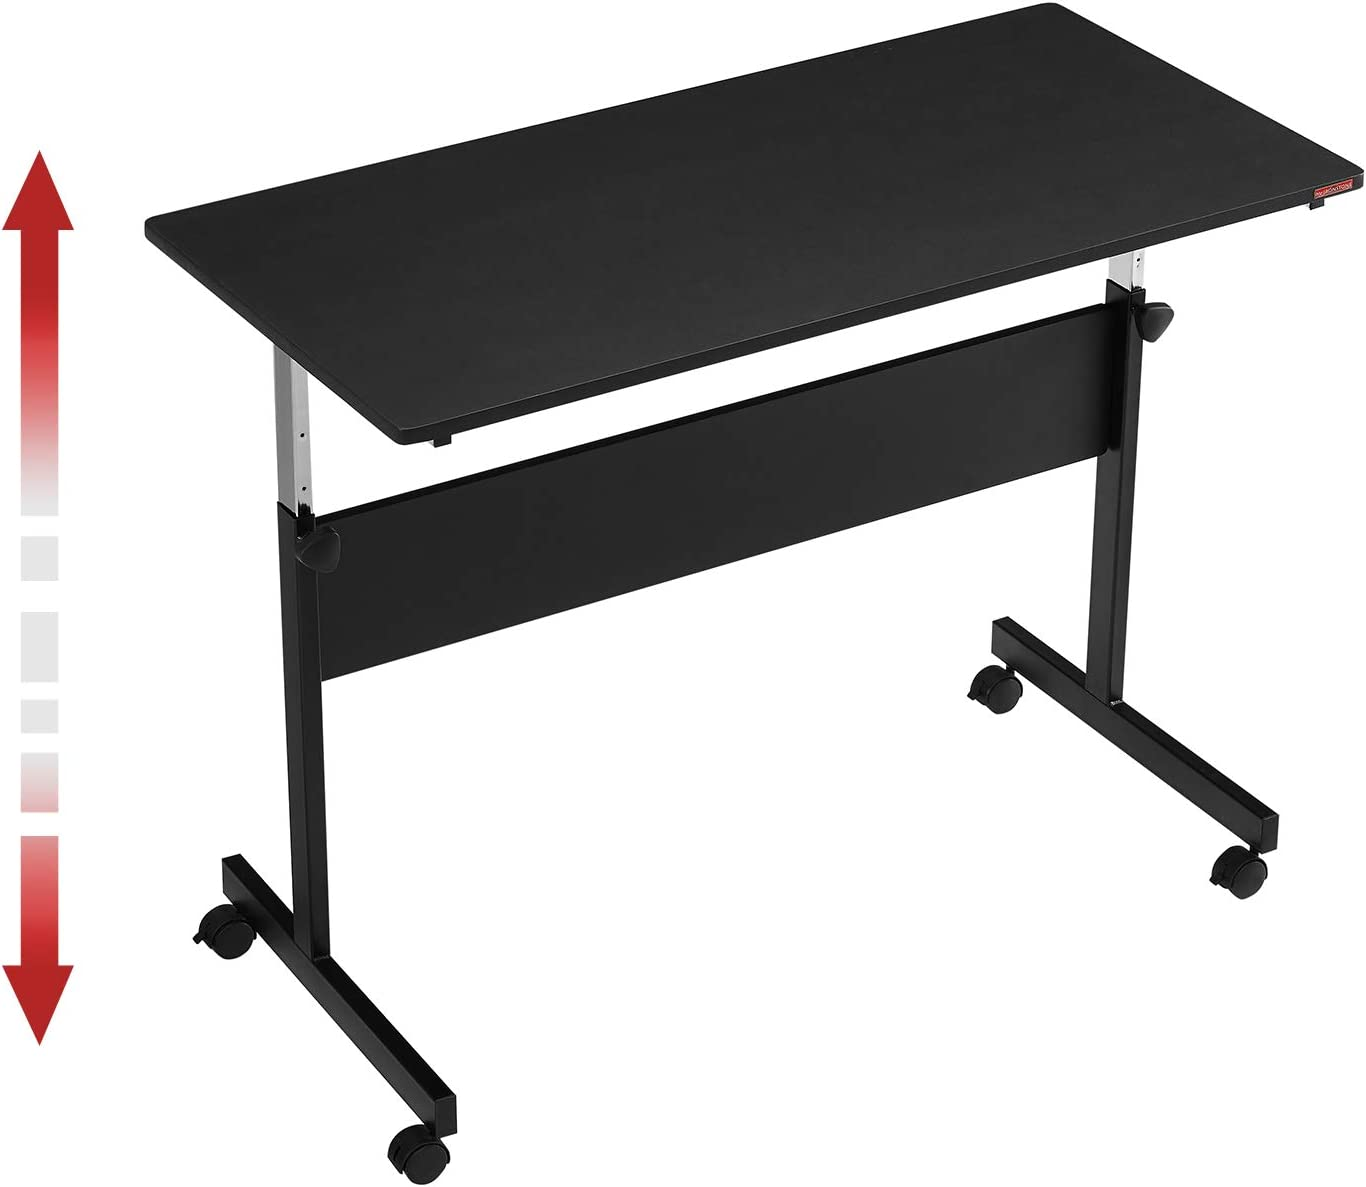 """Mr IRONSTONE Height Adjustable Desk Sit-Stand 47.6"""" Elevate Mobile Computer Desk Home & Office Utility Table with Rolling Wheels(Black)"""